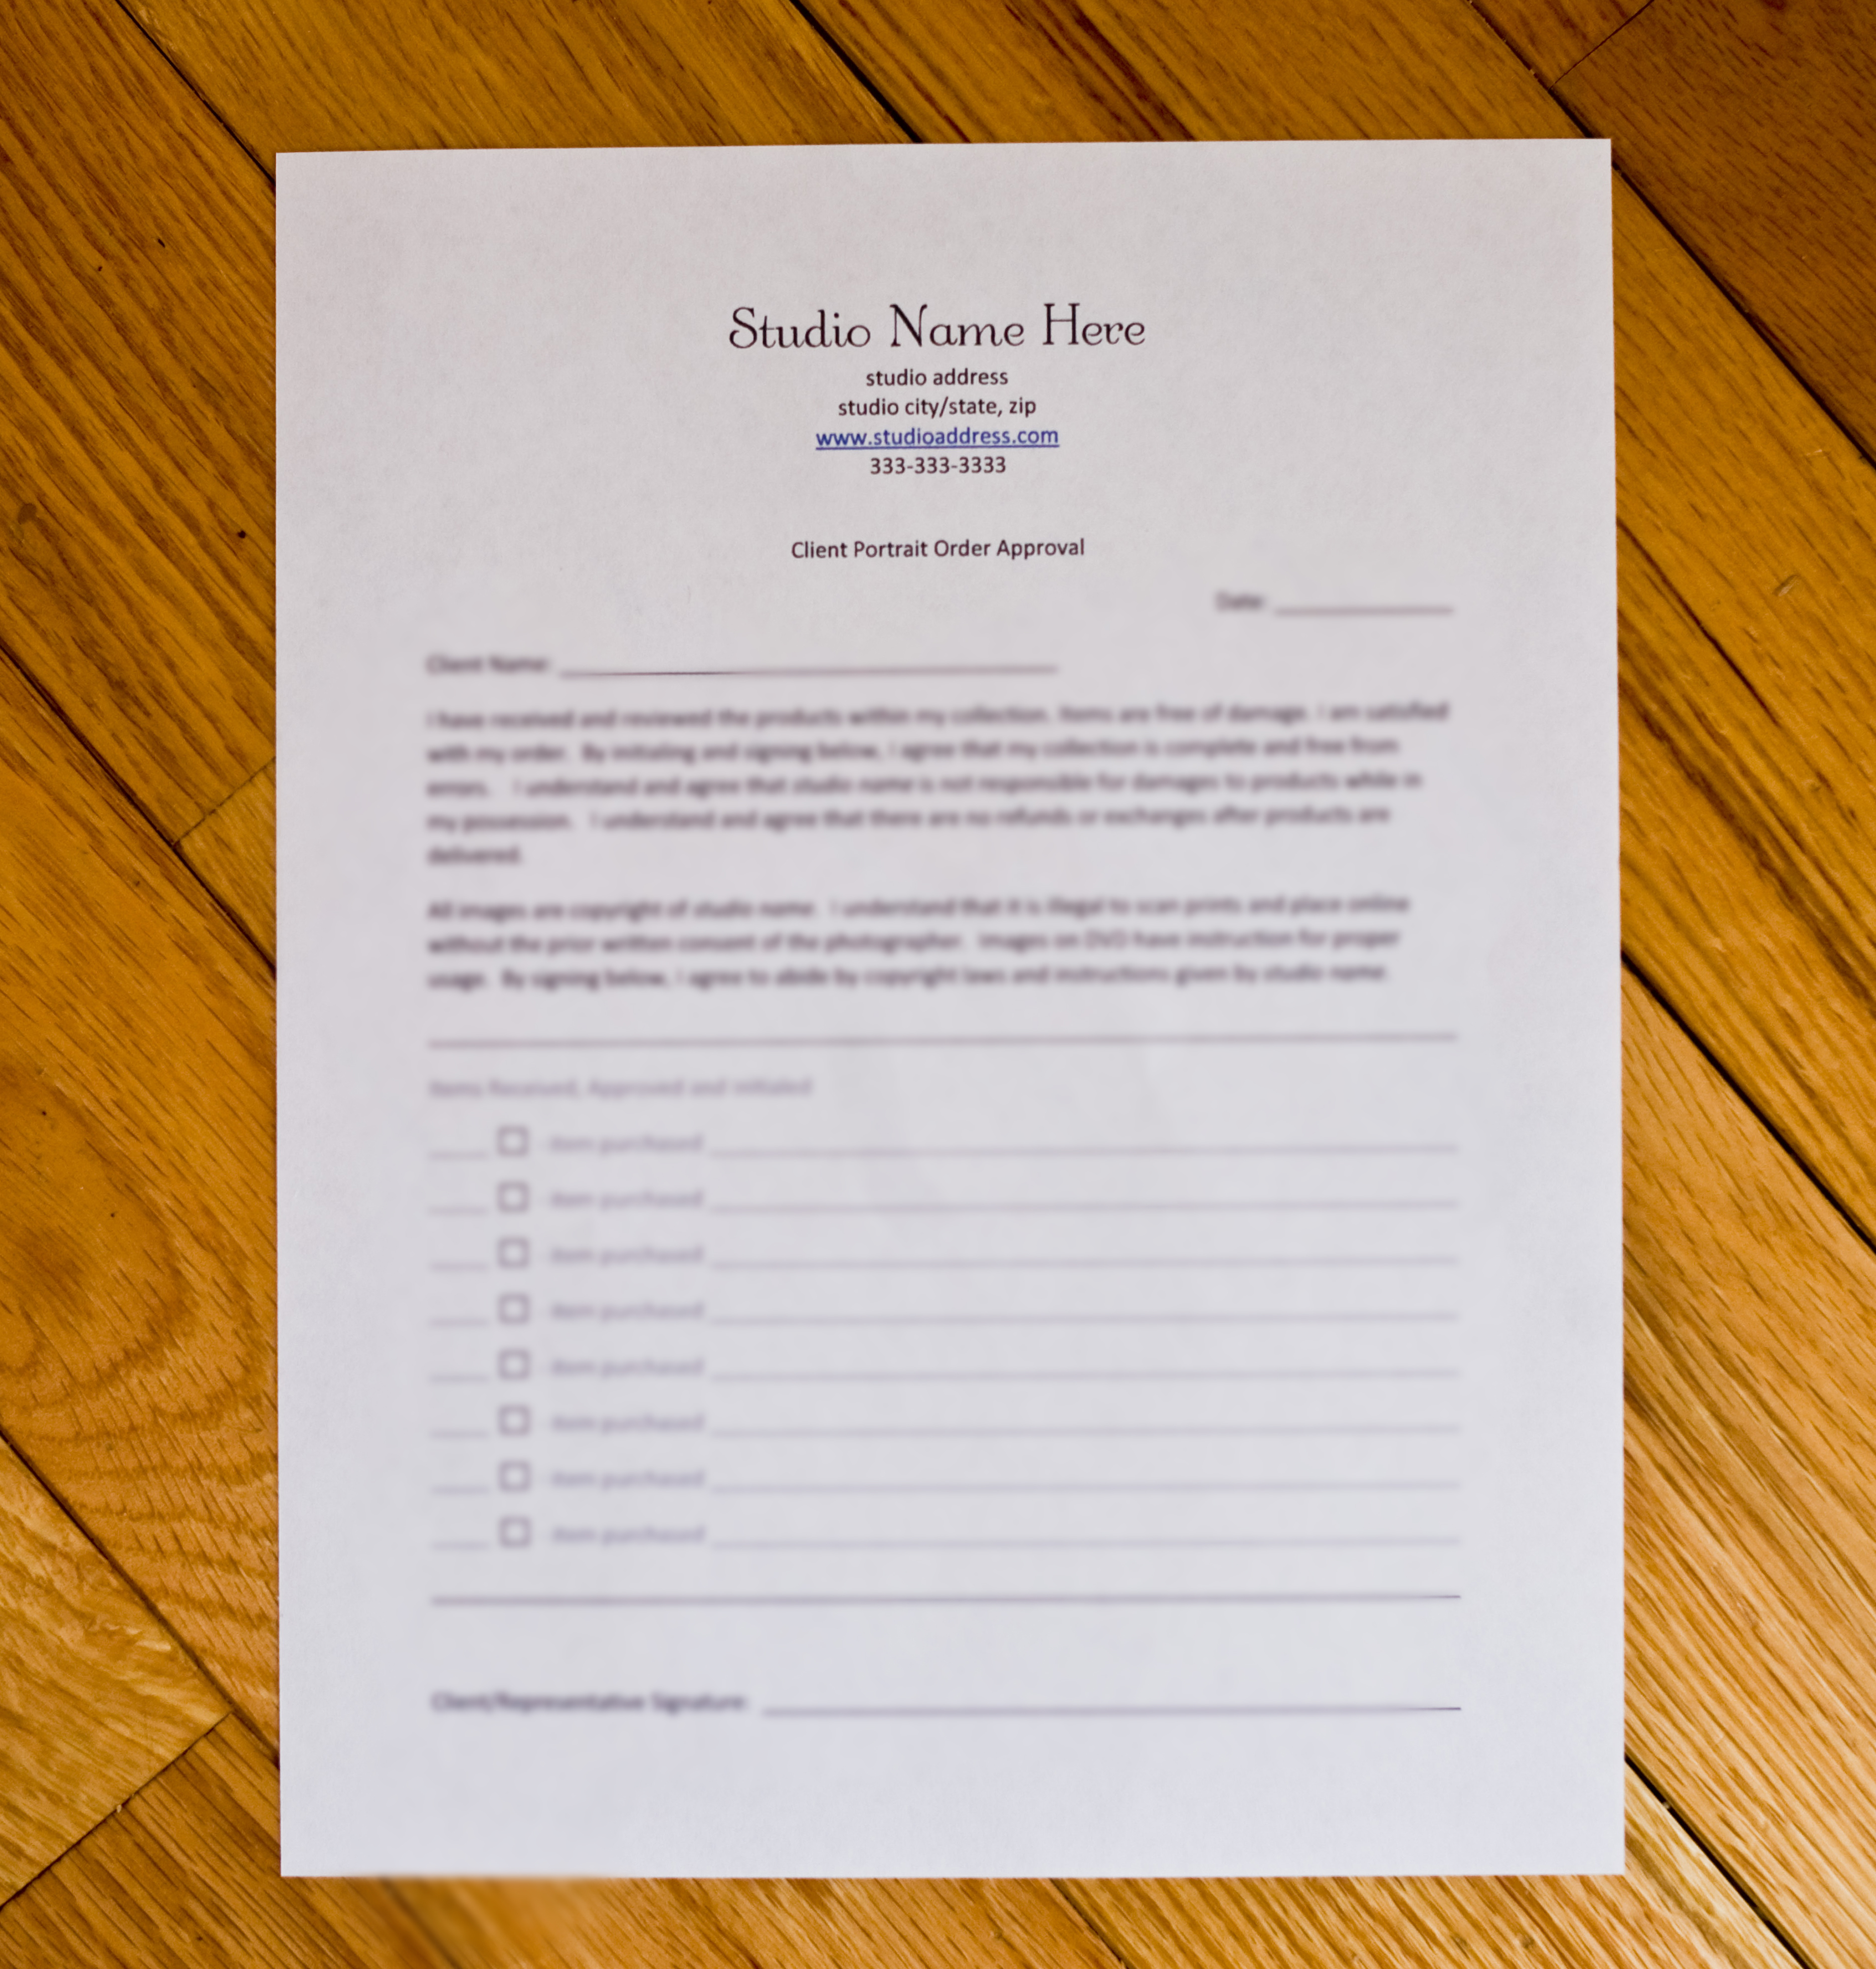 Business Forms : Newborn Posing & More, Shop